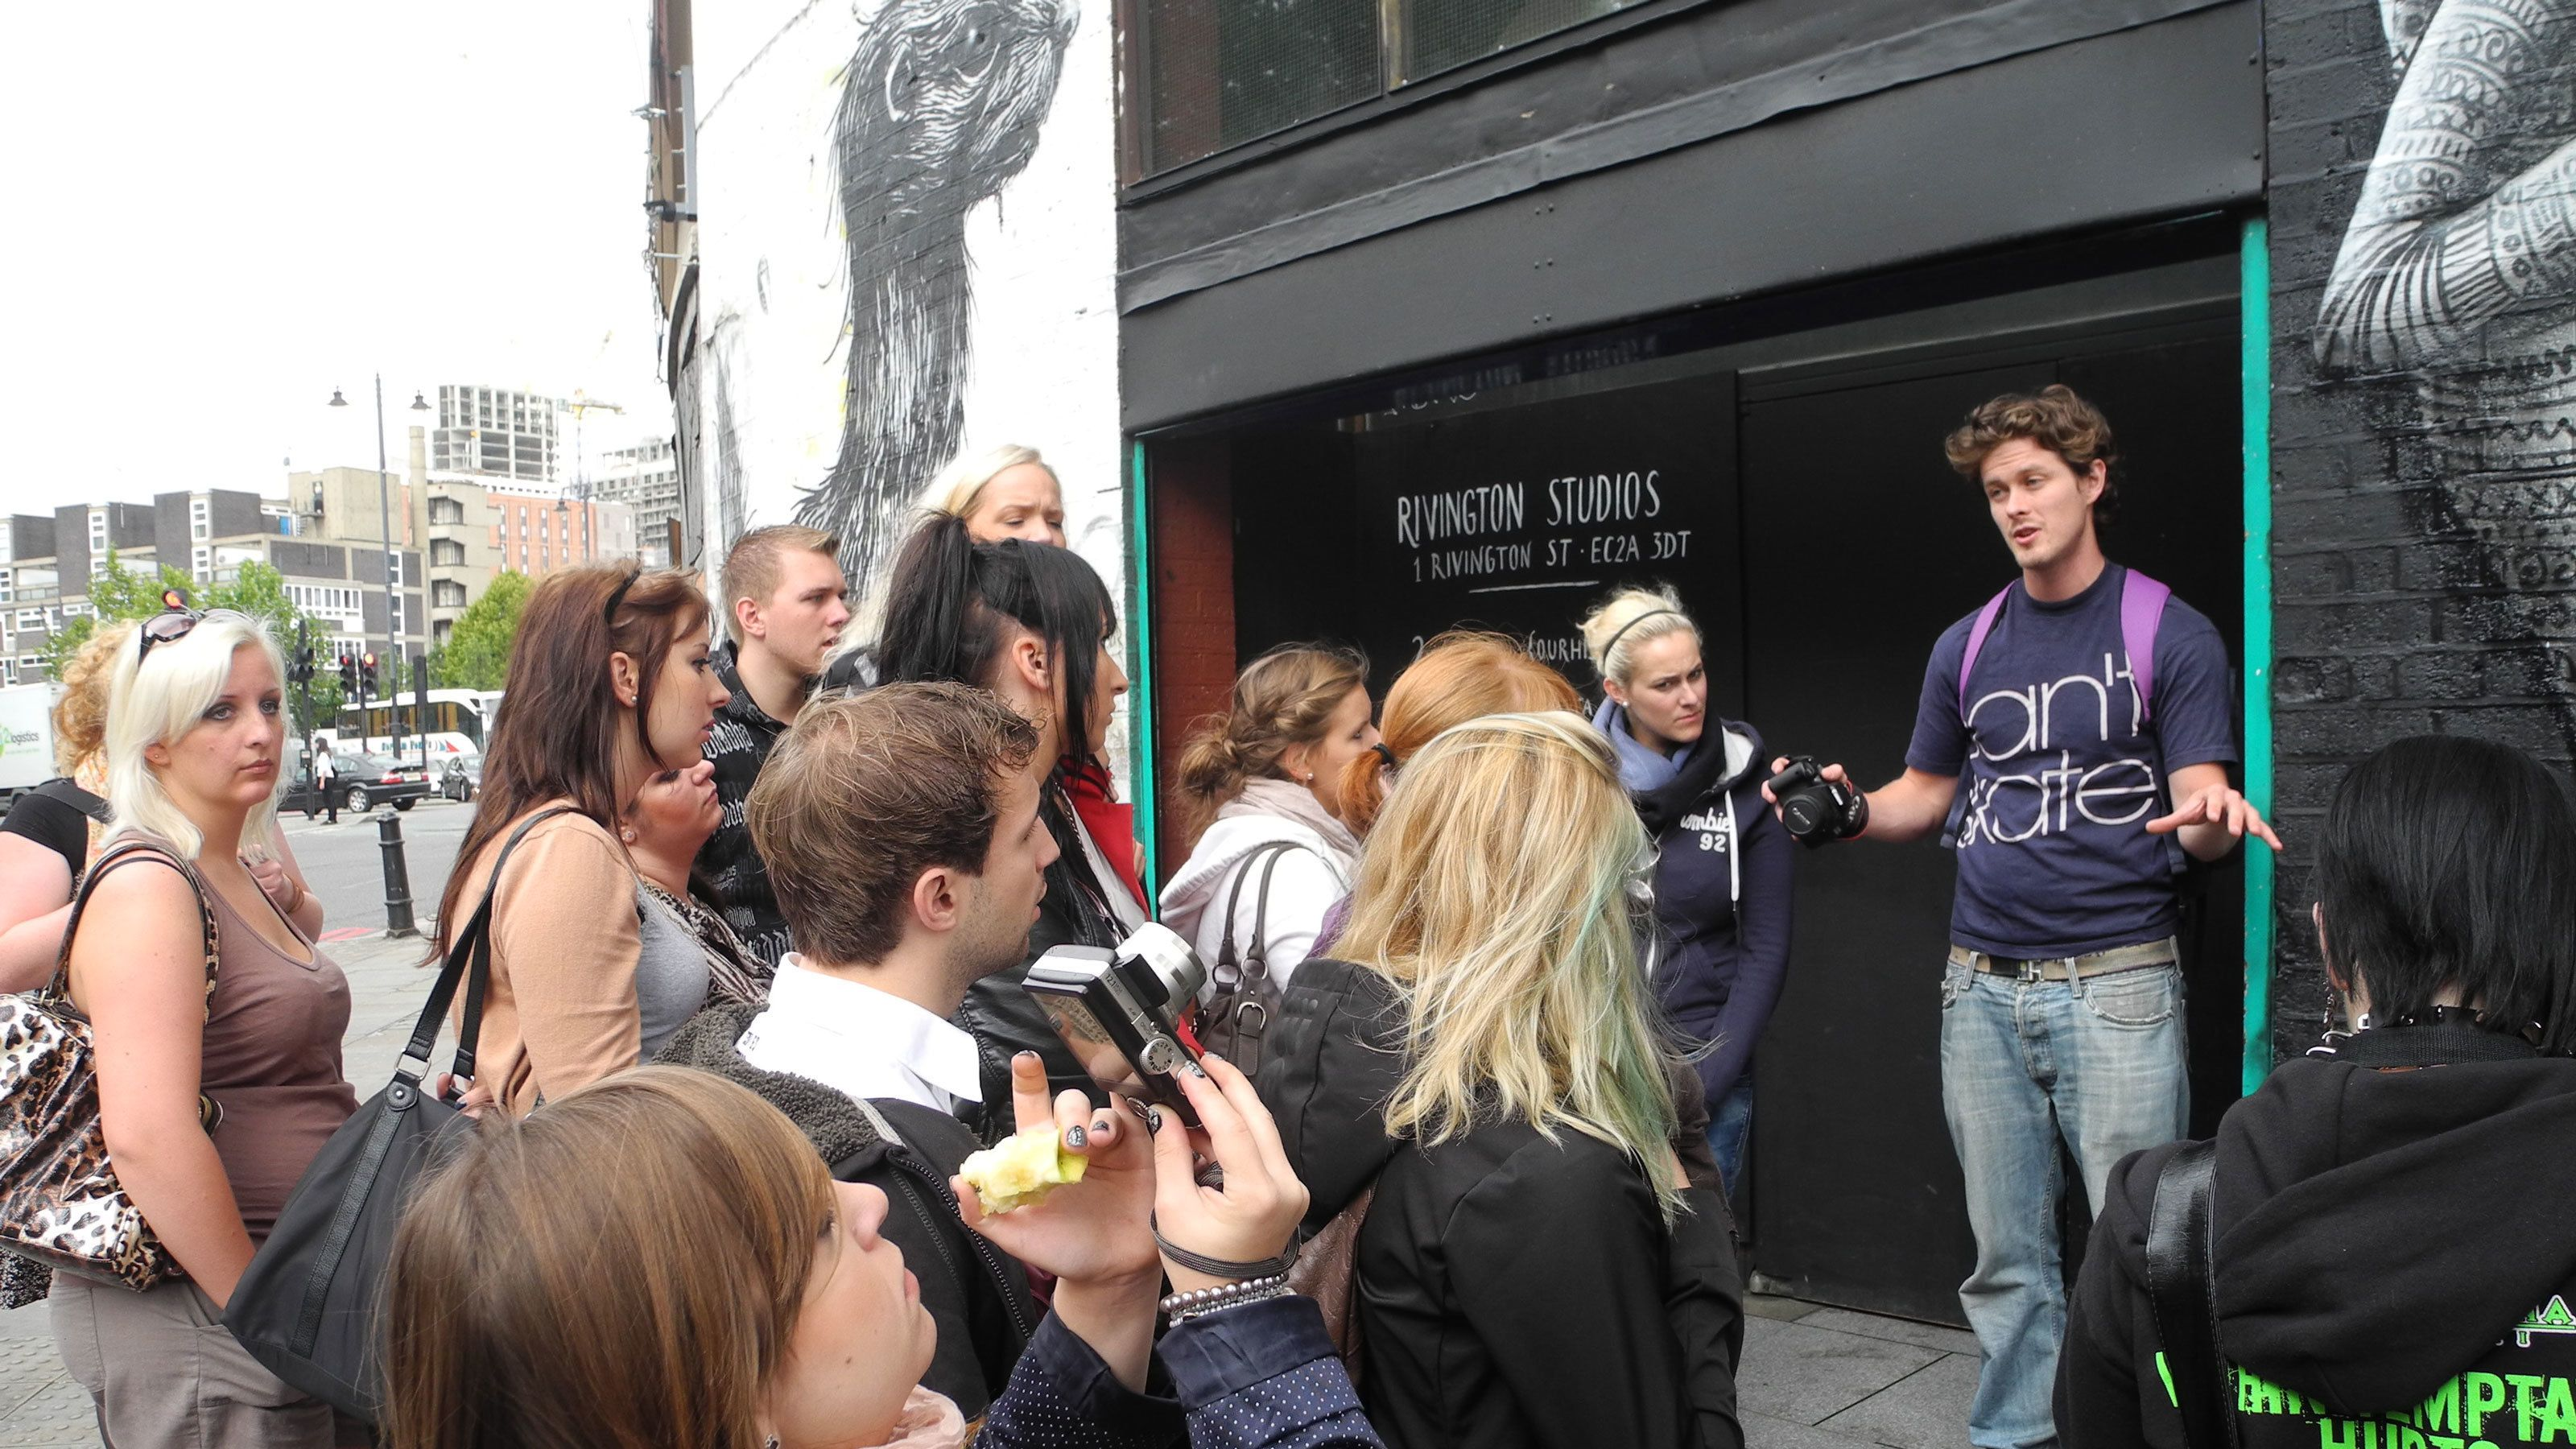 Tour guide with group on Street Art Tour of London